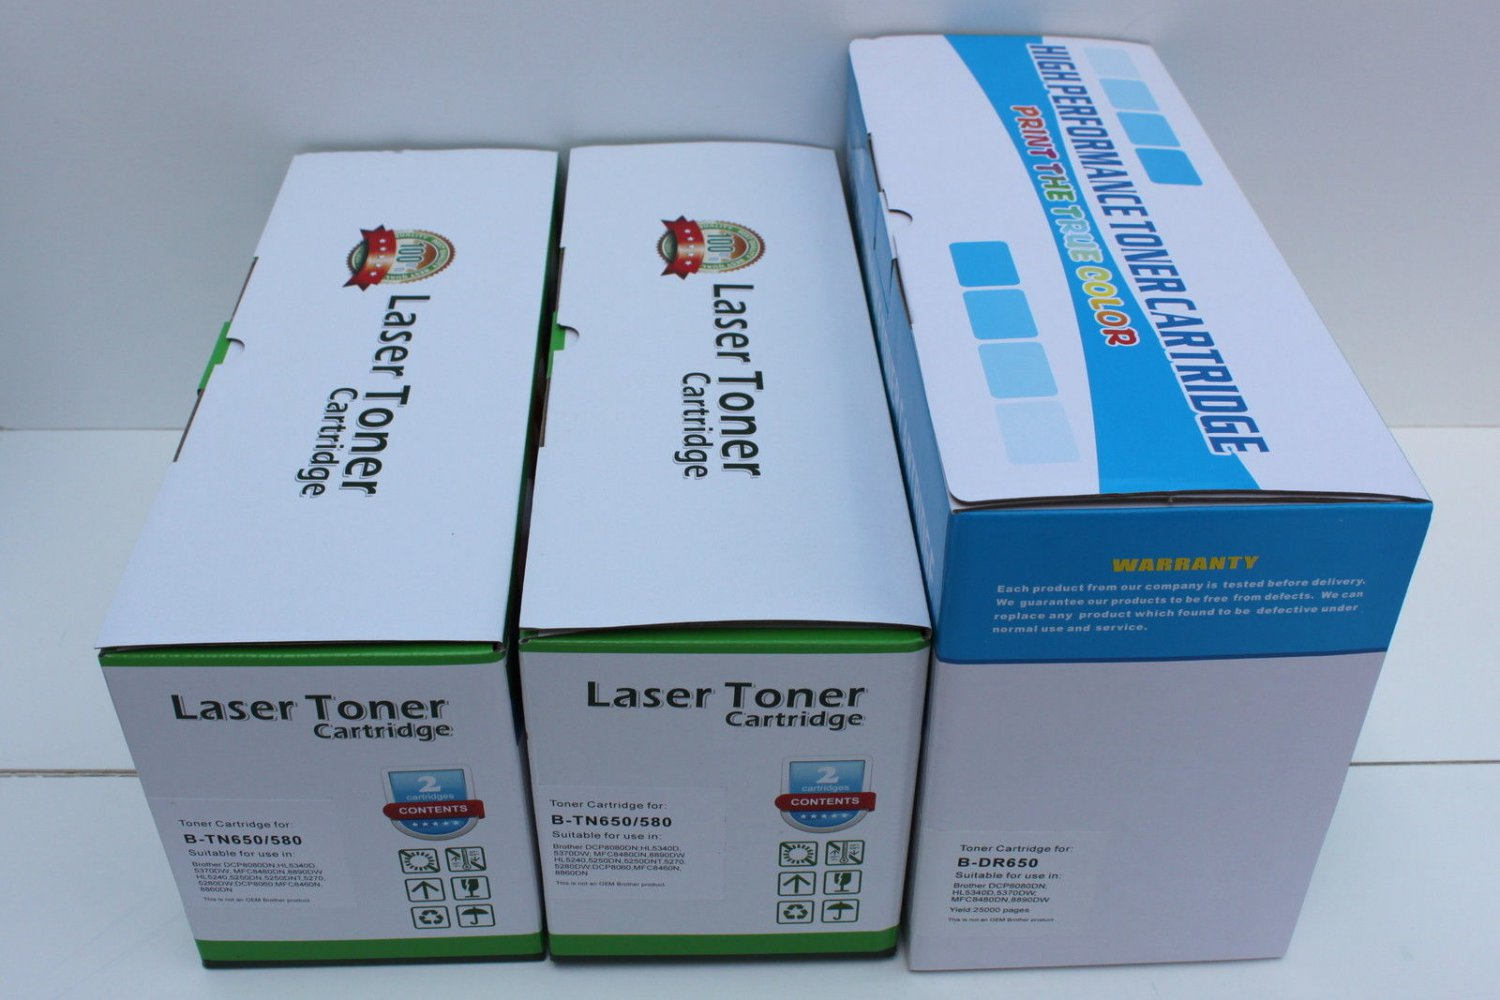 Drum DR620+2 High Yield Toner TN650 for Brother DCP-8080 8085 MFC-8860 8870 8890